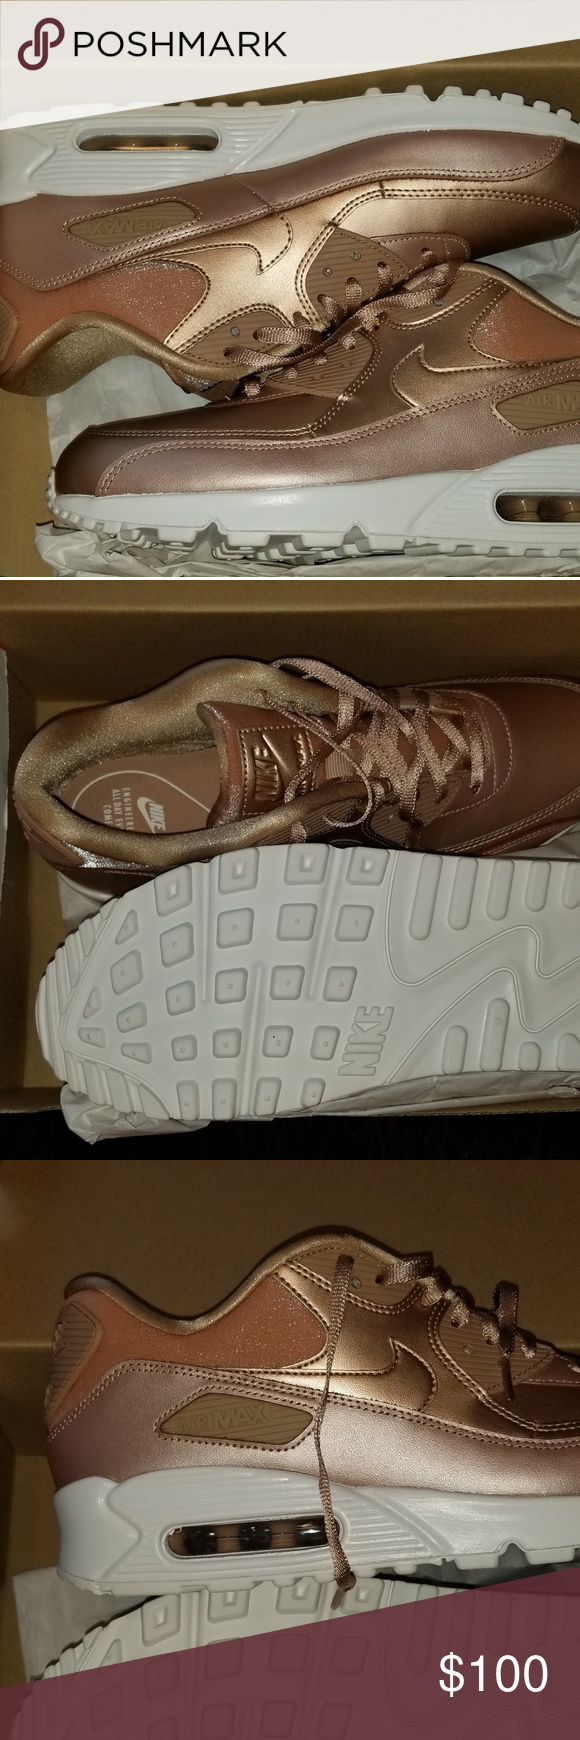 Women Nike Air Max Thea Rose Gold on Poshmark